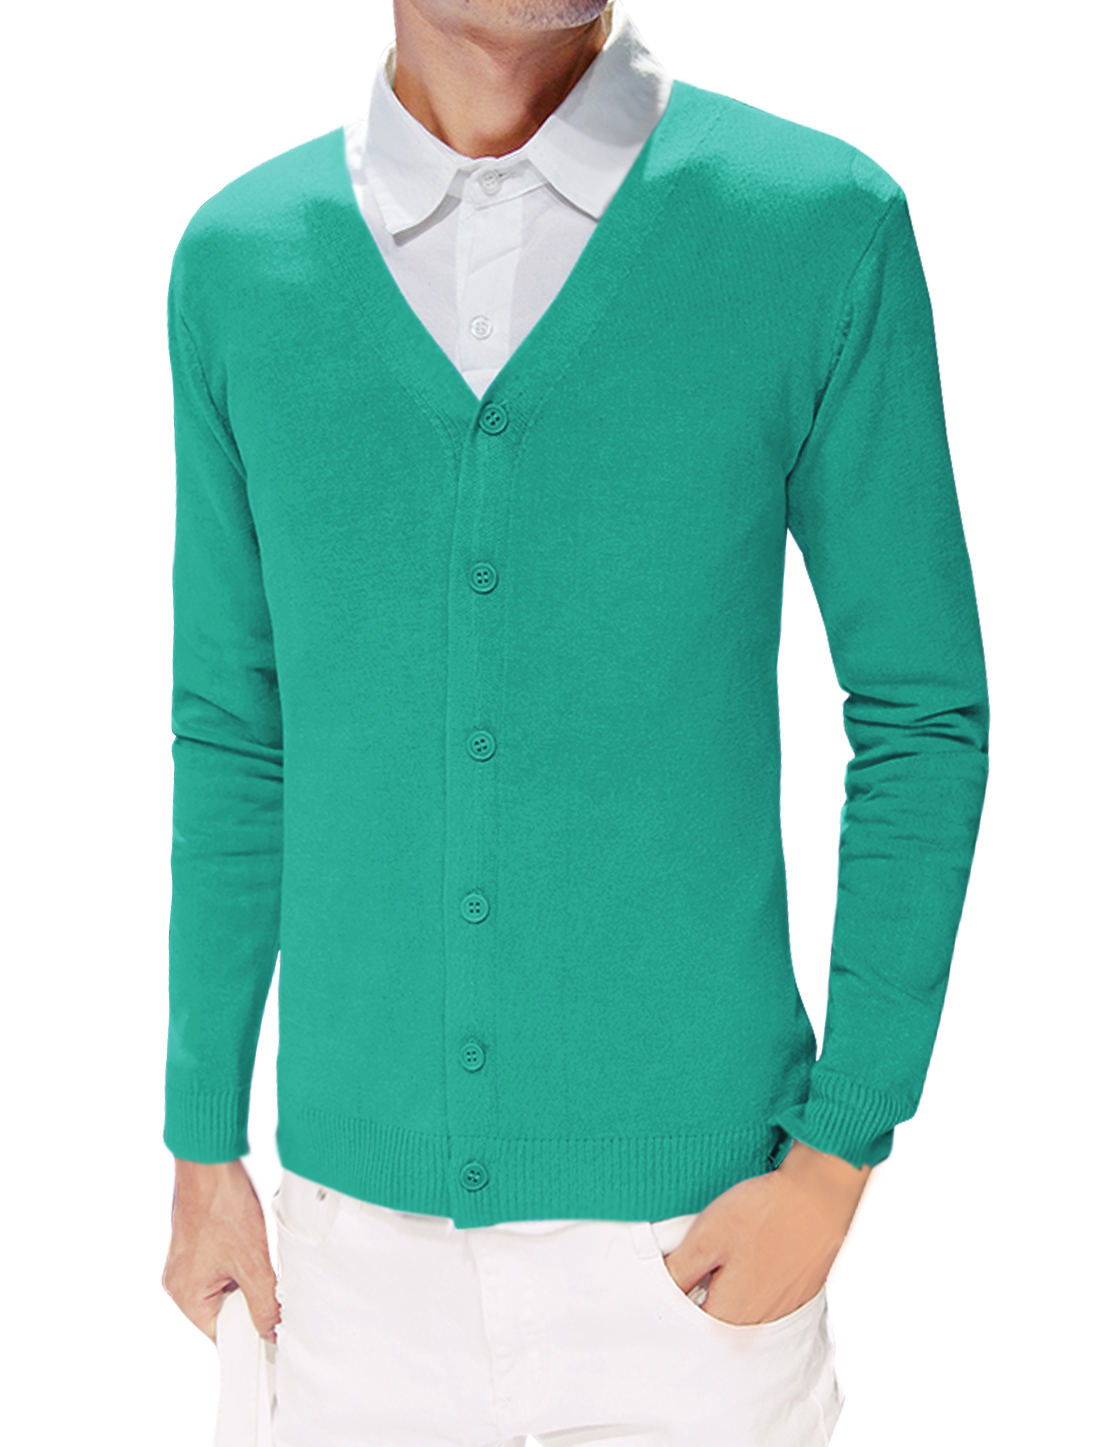 Men Long Sleeves V Neck Single Breasted Slim Fit Knit Cardigan Green S